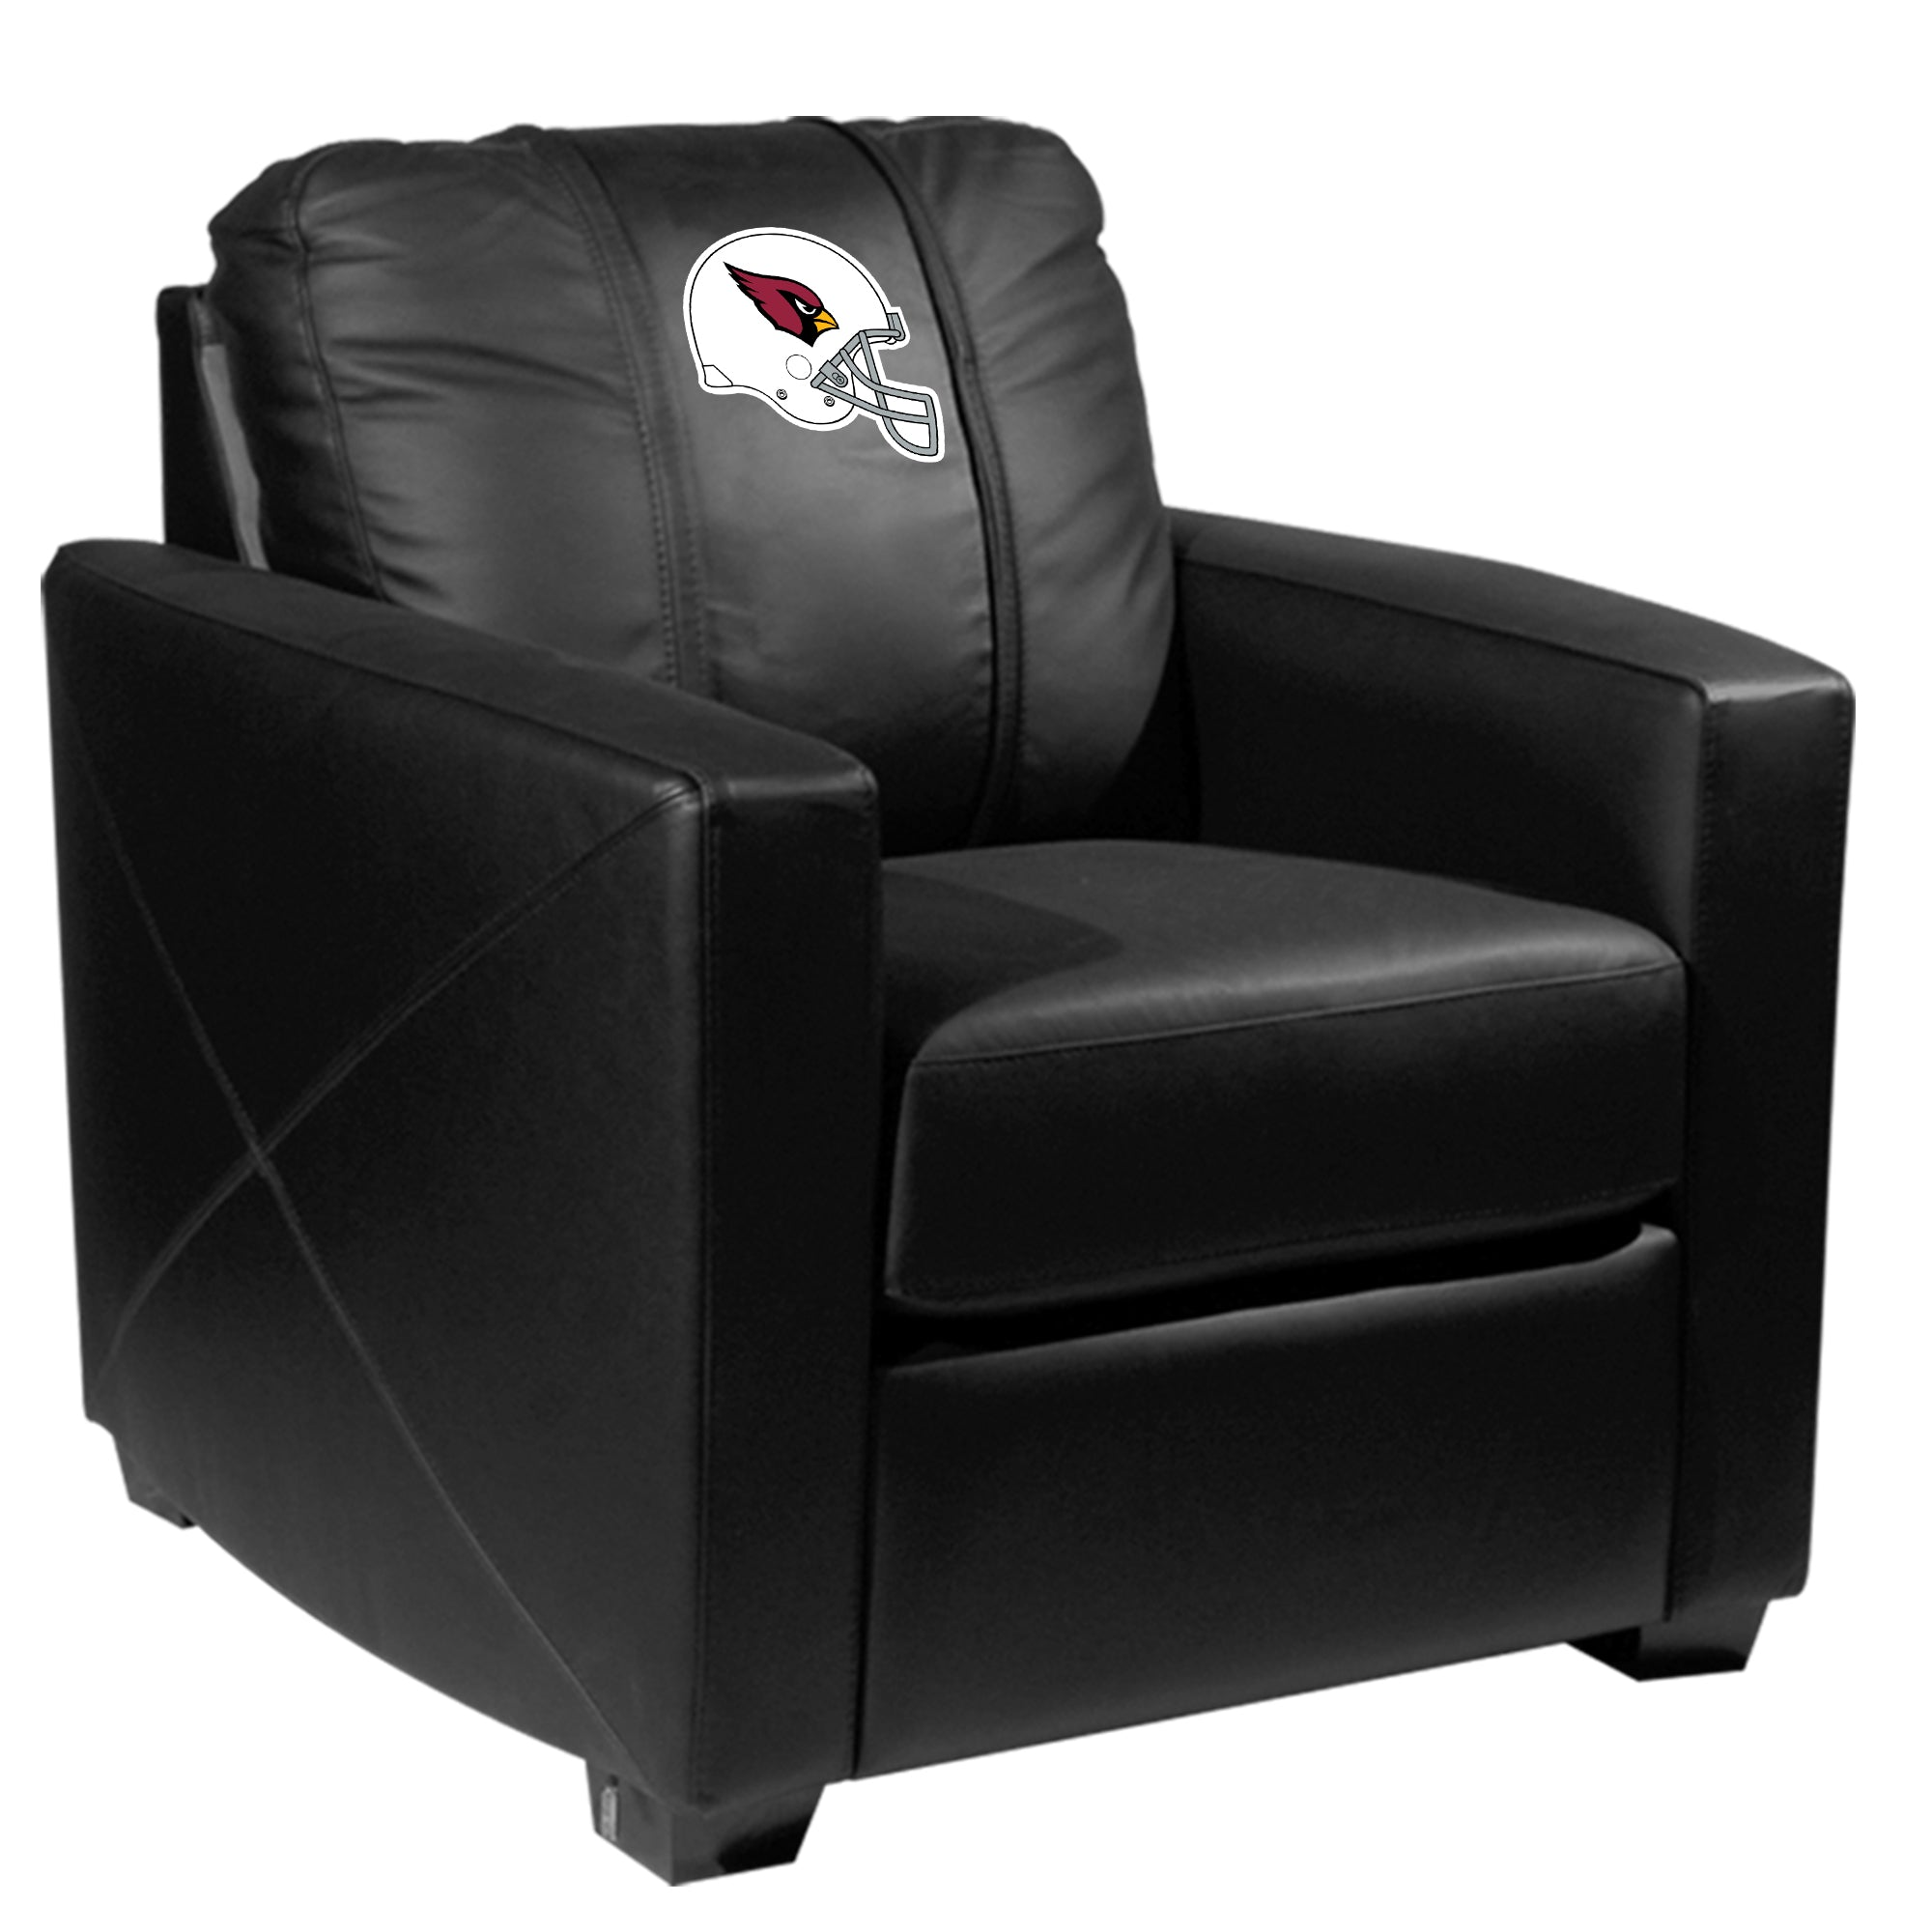 Silver Club Chair with Arizona Cardinals Helmet Logo